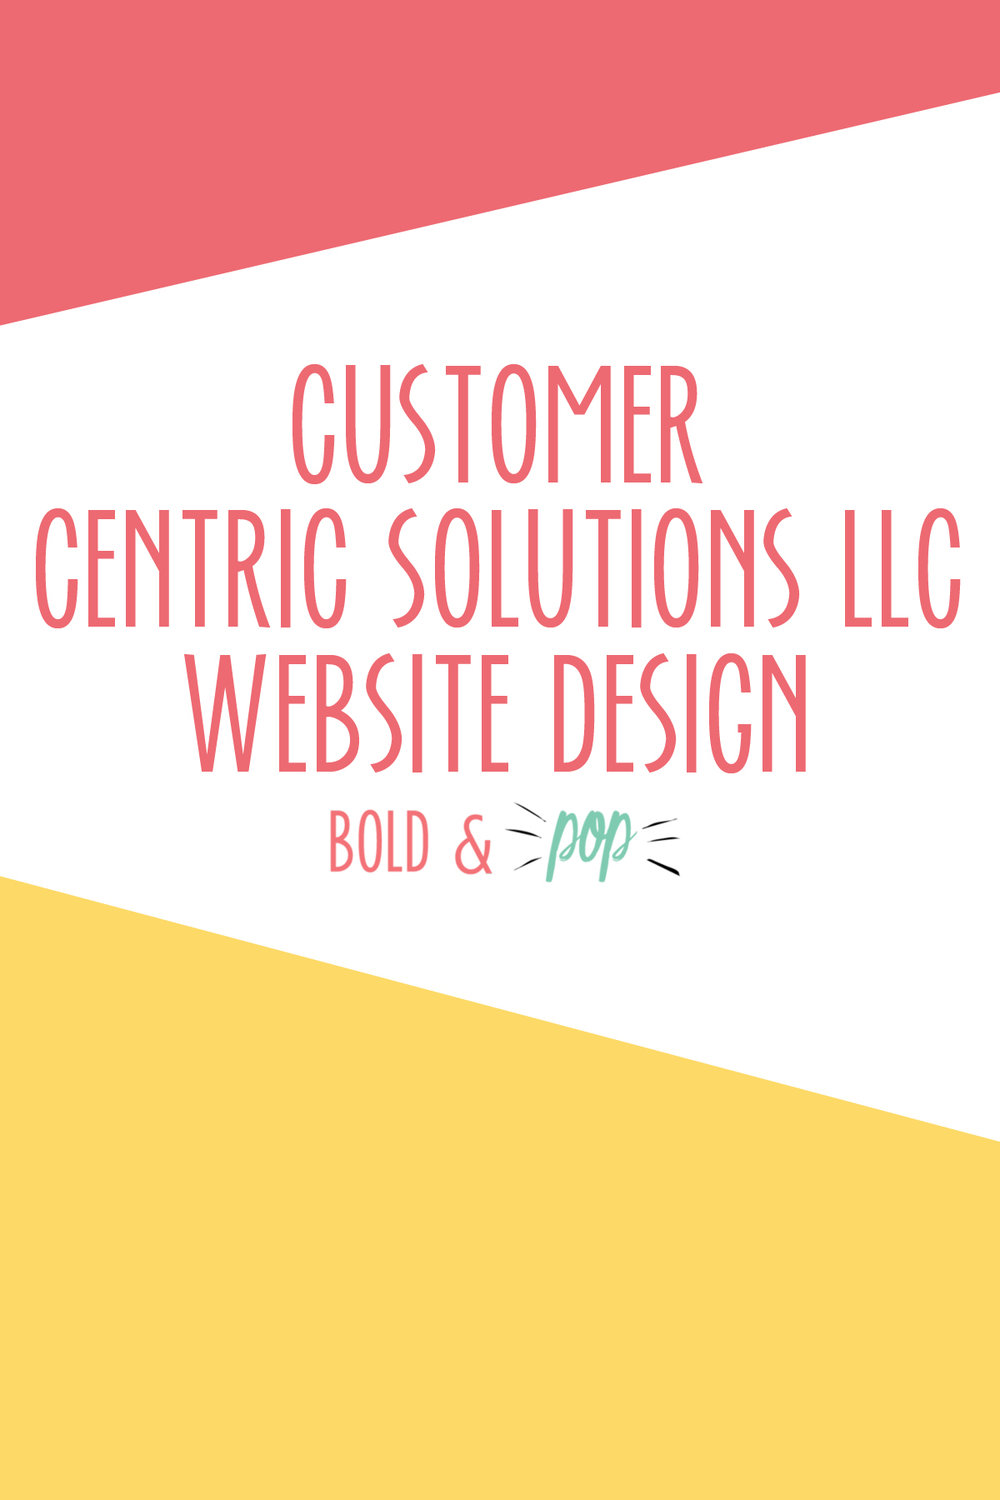 Bold & Pop: Customer Centric Solutions LLC Consulting Business Squarespace Website Design